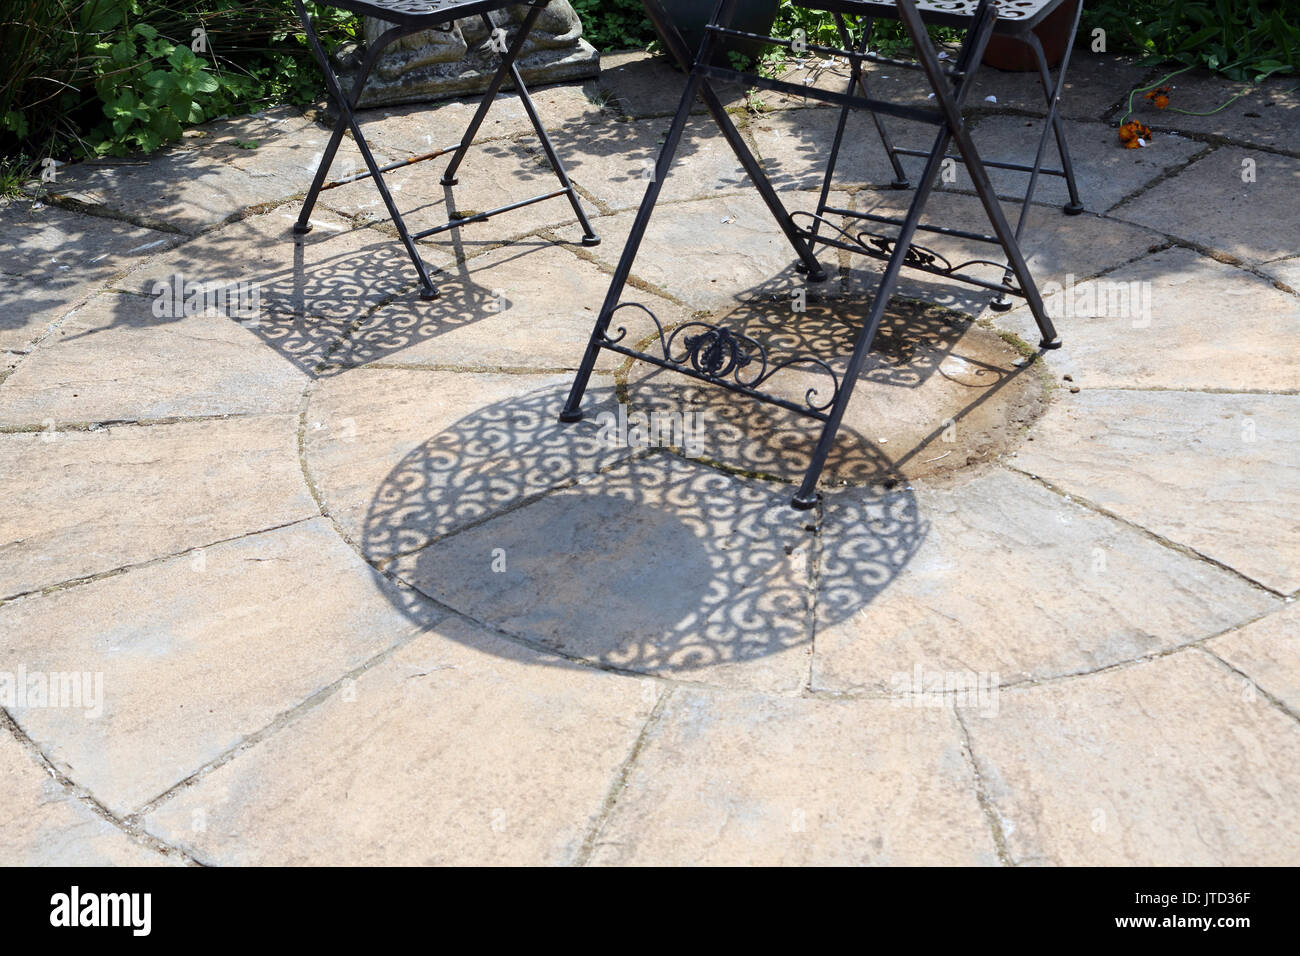 Wrought Iron Garden Furniture And Shadows In Summer Birmingham West  Midlands England   Stock Image